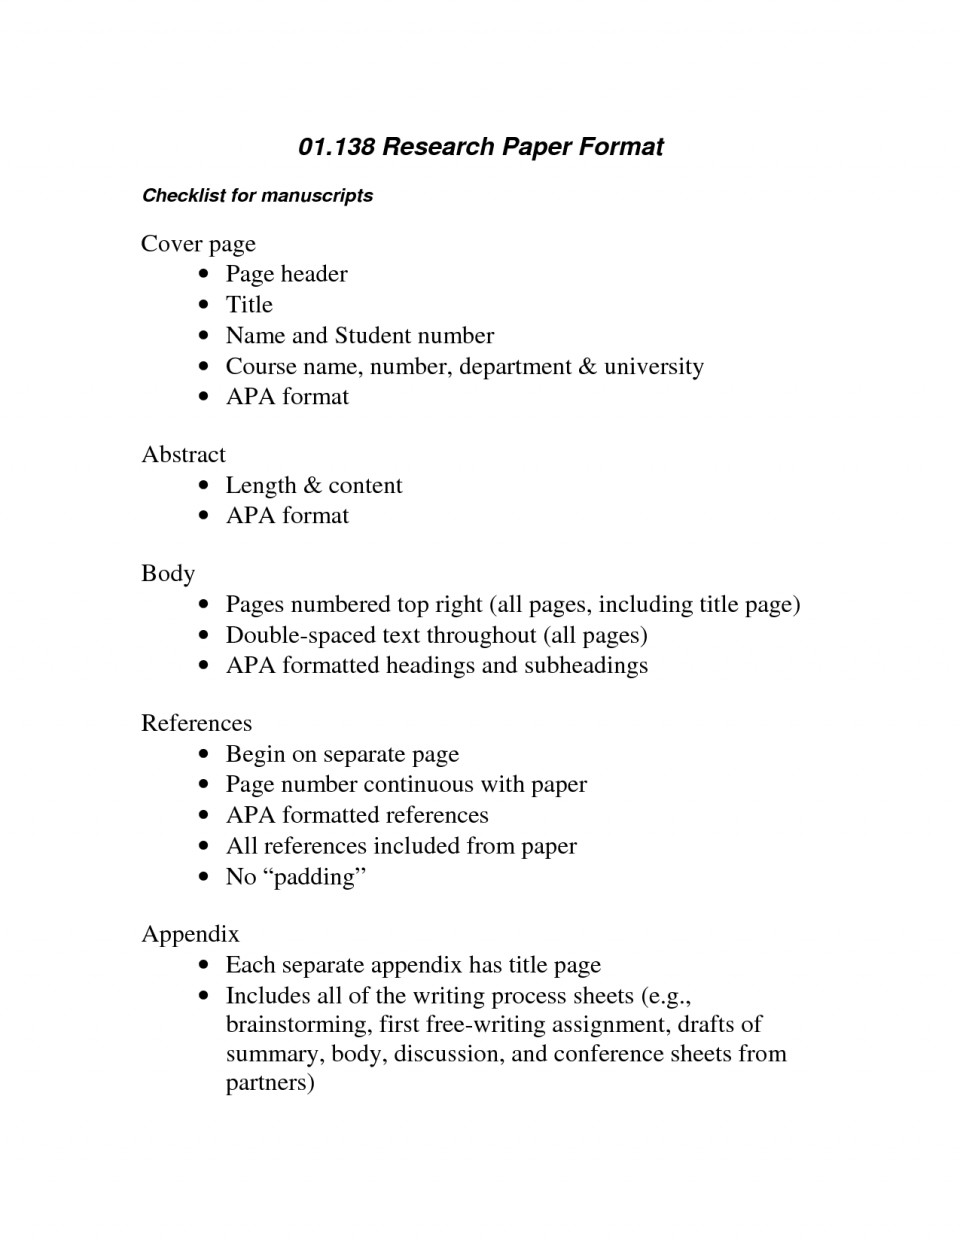 002 Research Paper Parts Of Apa Format Wonderful 960